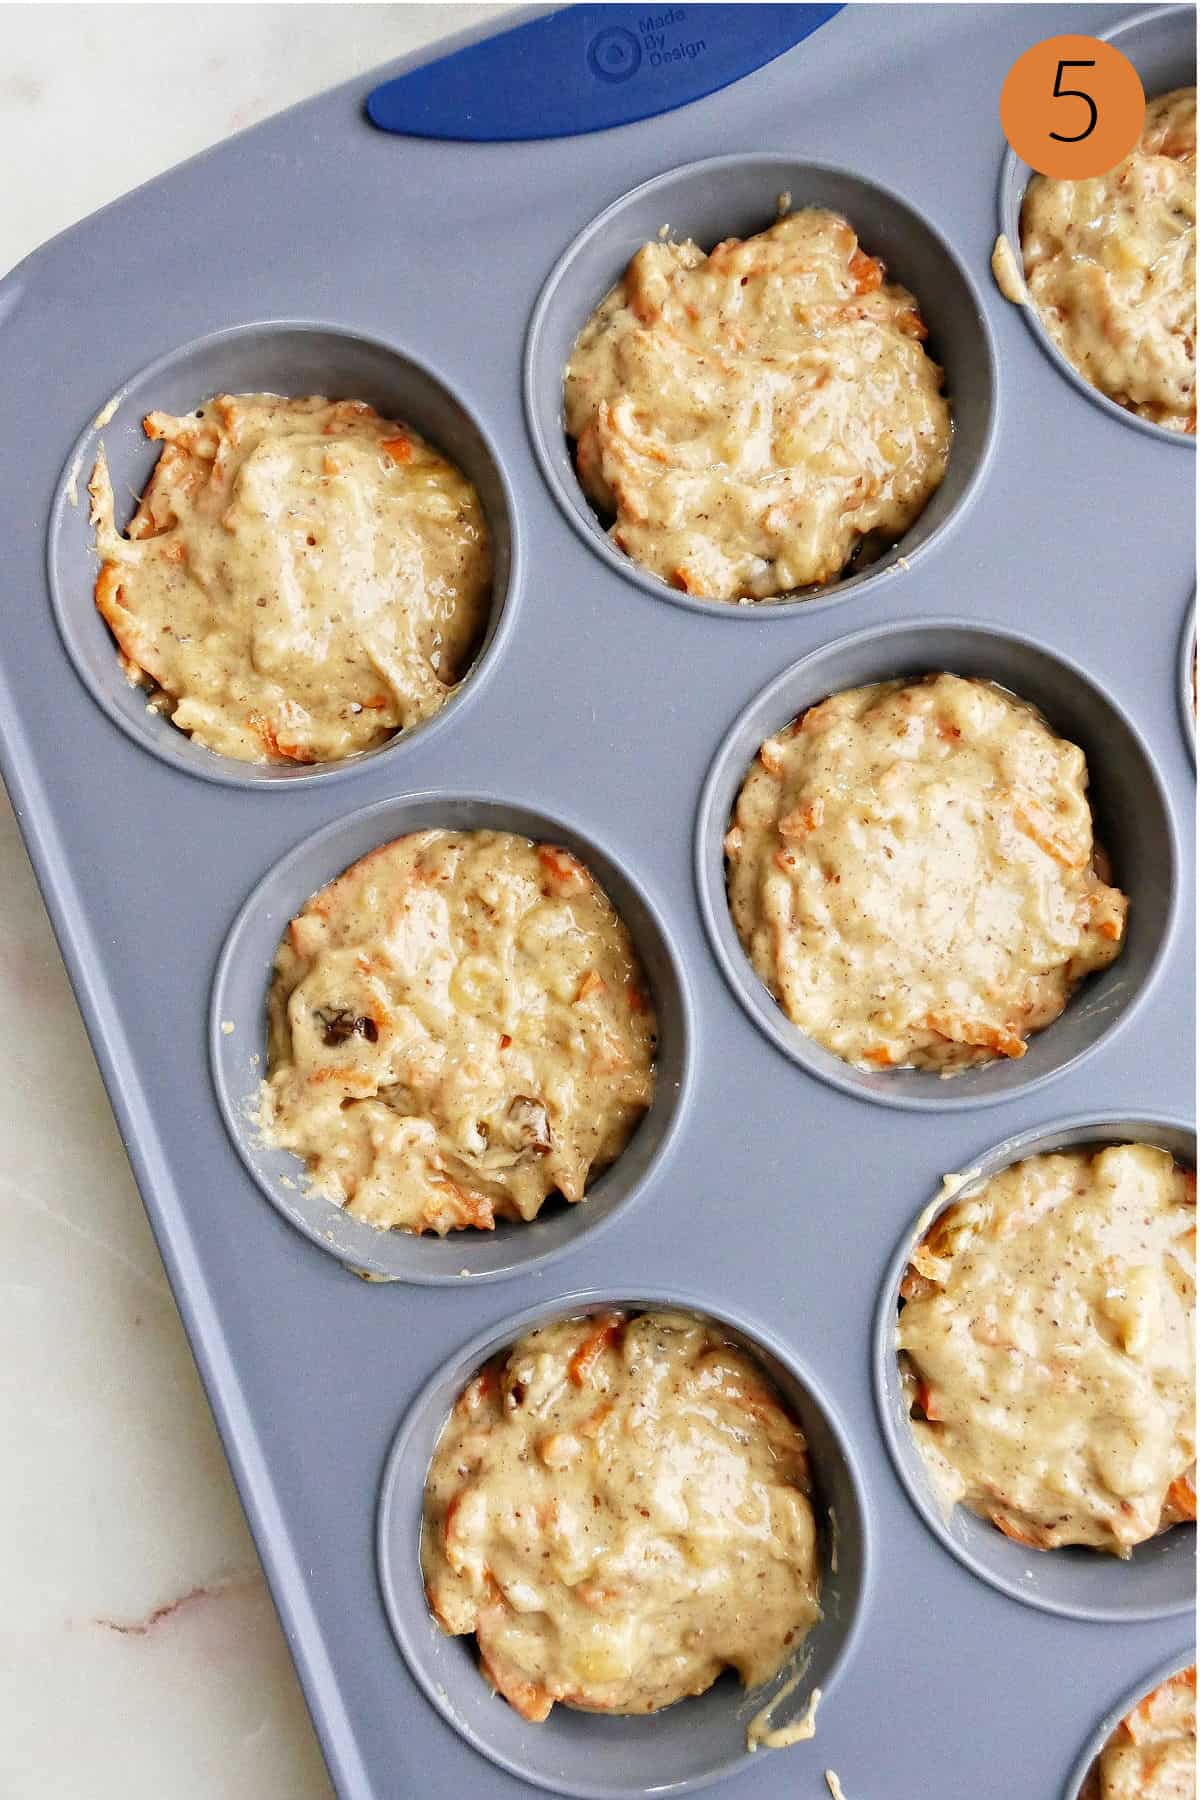 half of a muffin pan filled with batter for banana carrot muffins